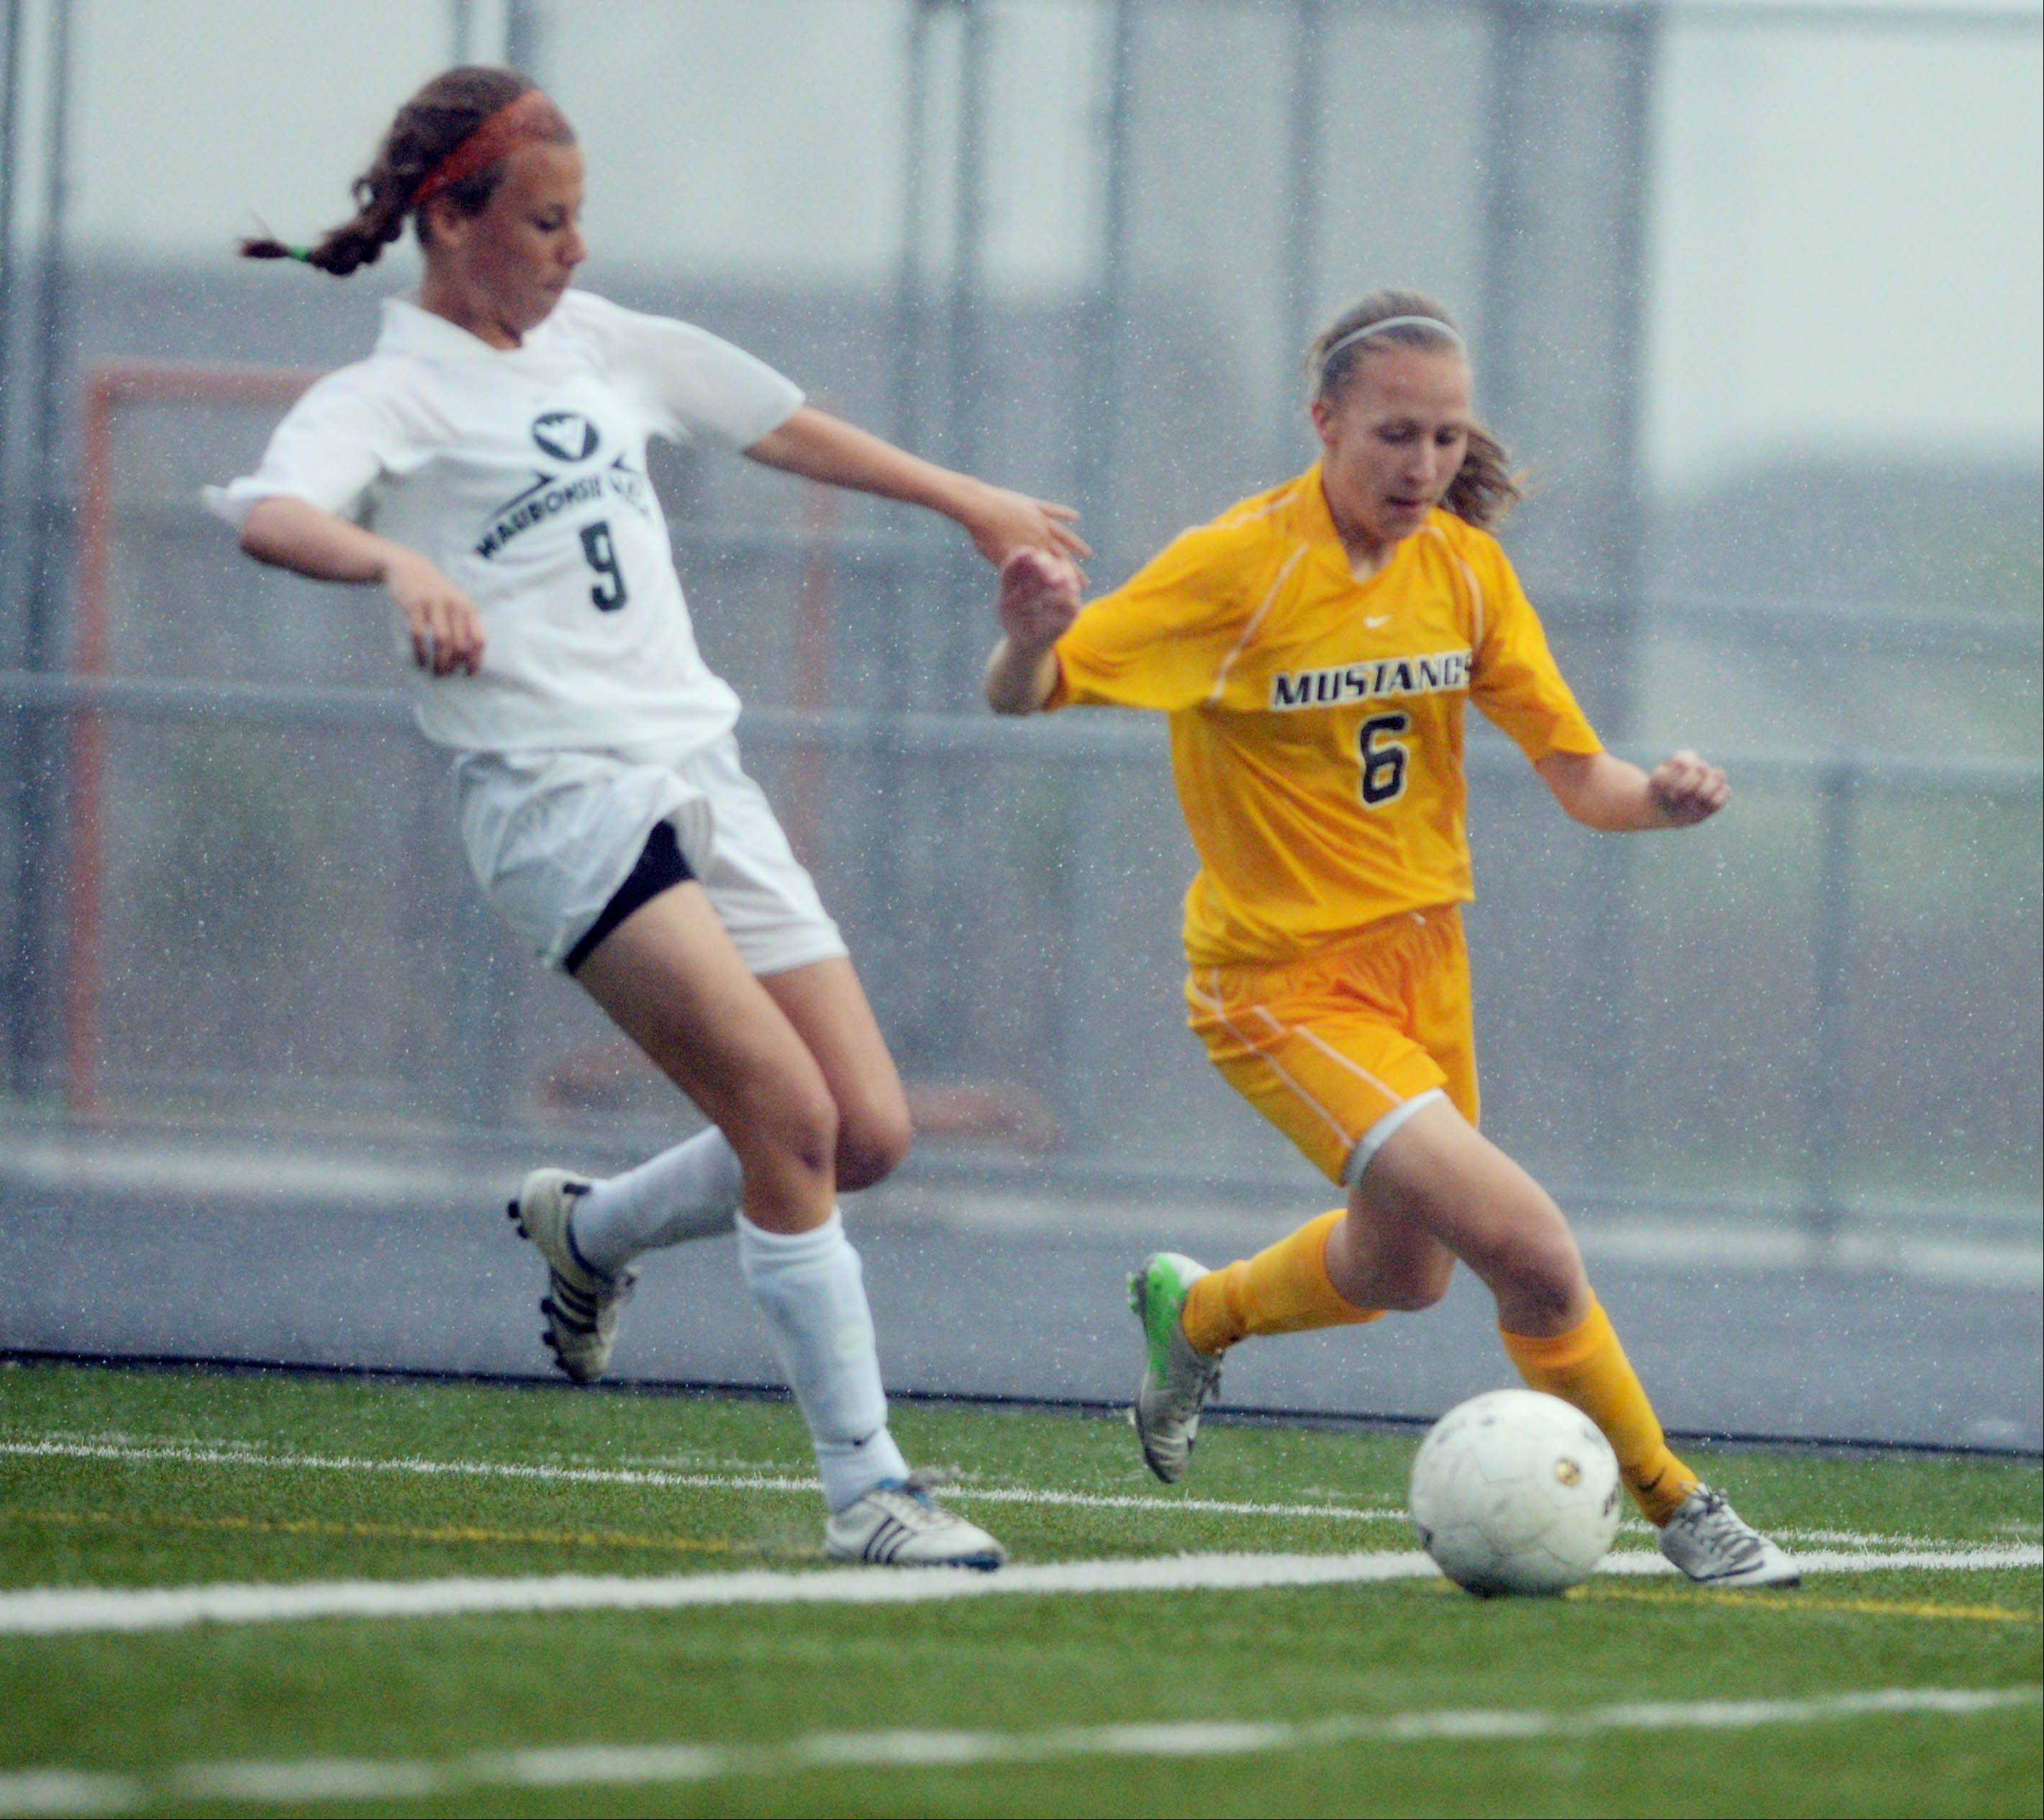 Rachael Brots of Waubonsie,left, and Alena Sidwell of Metea chase the ball durimng the class 3A Metea Valley girls soccer regional final Friday.